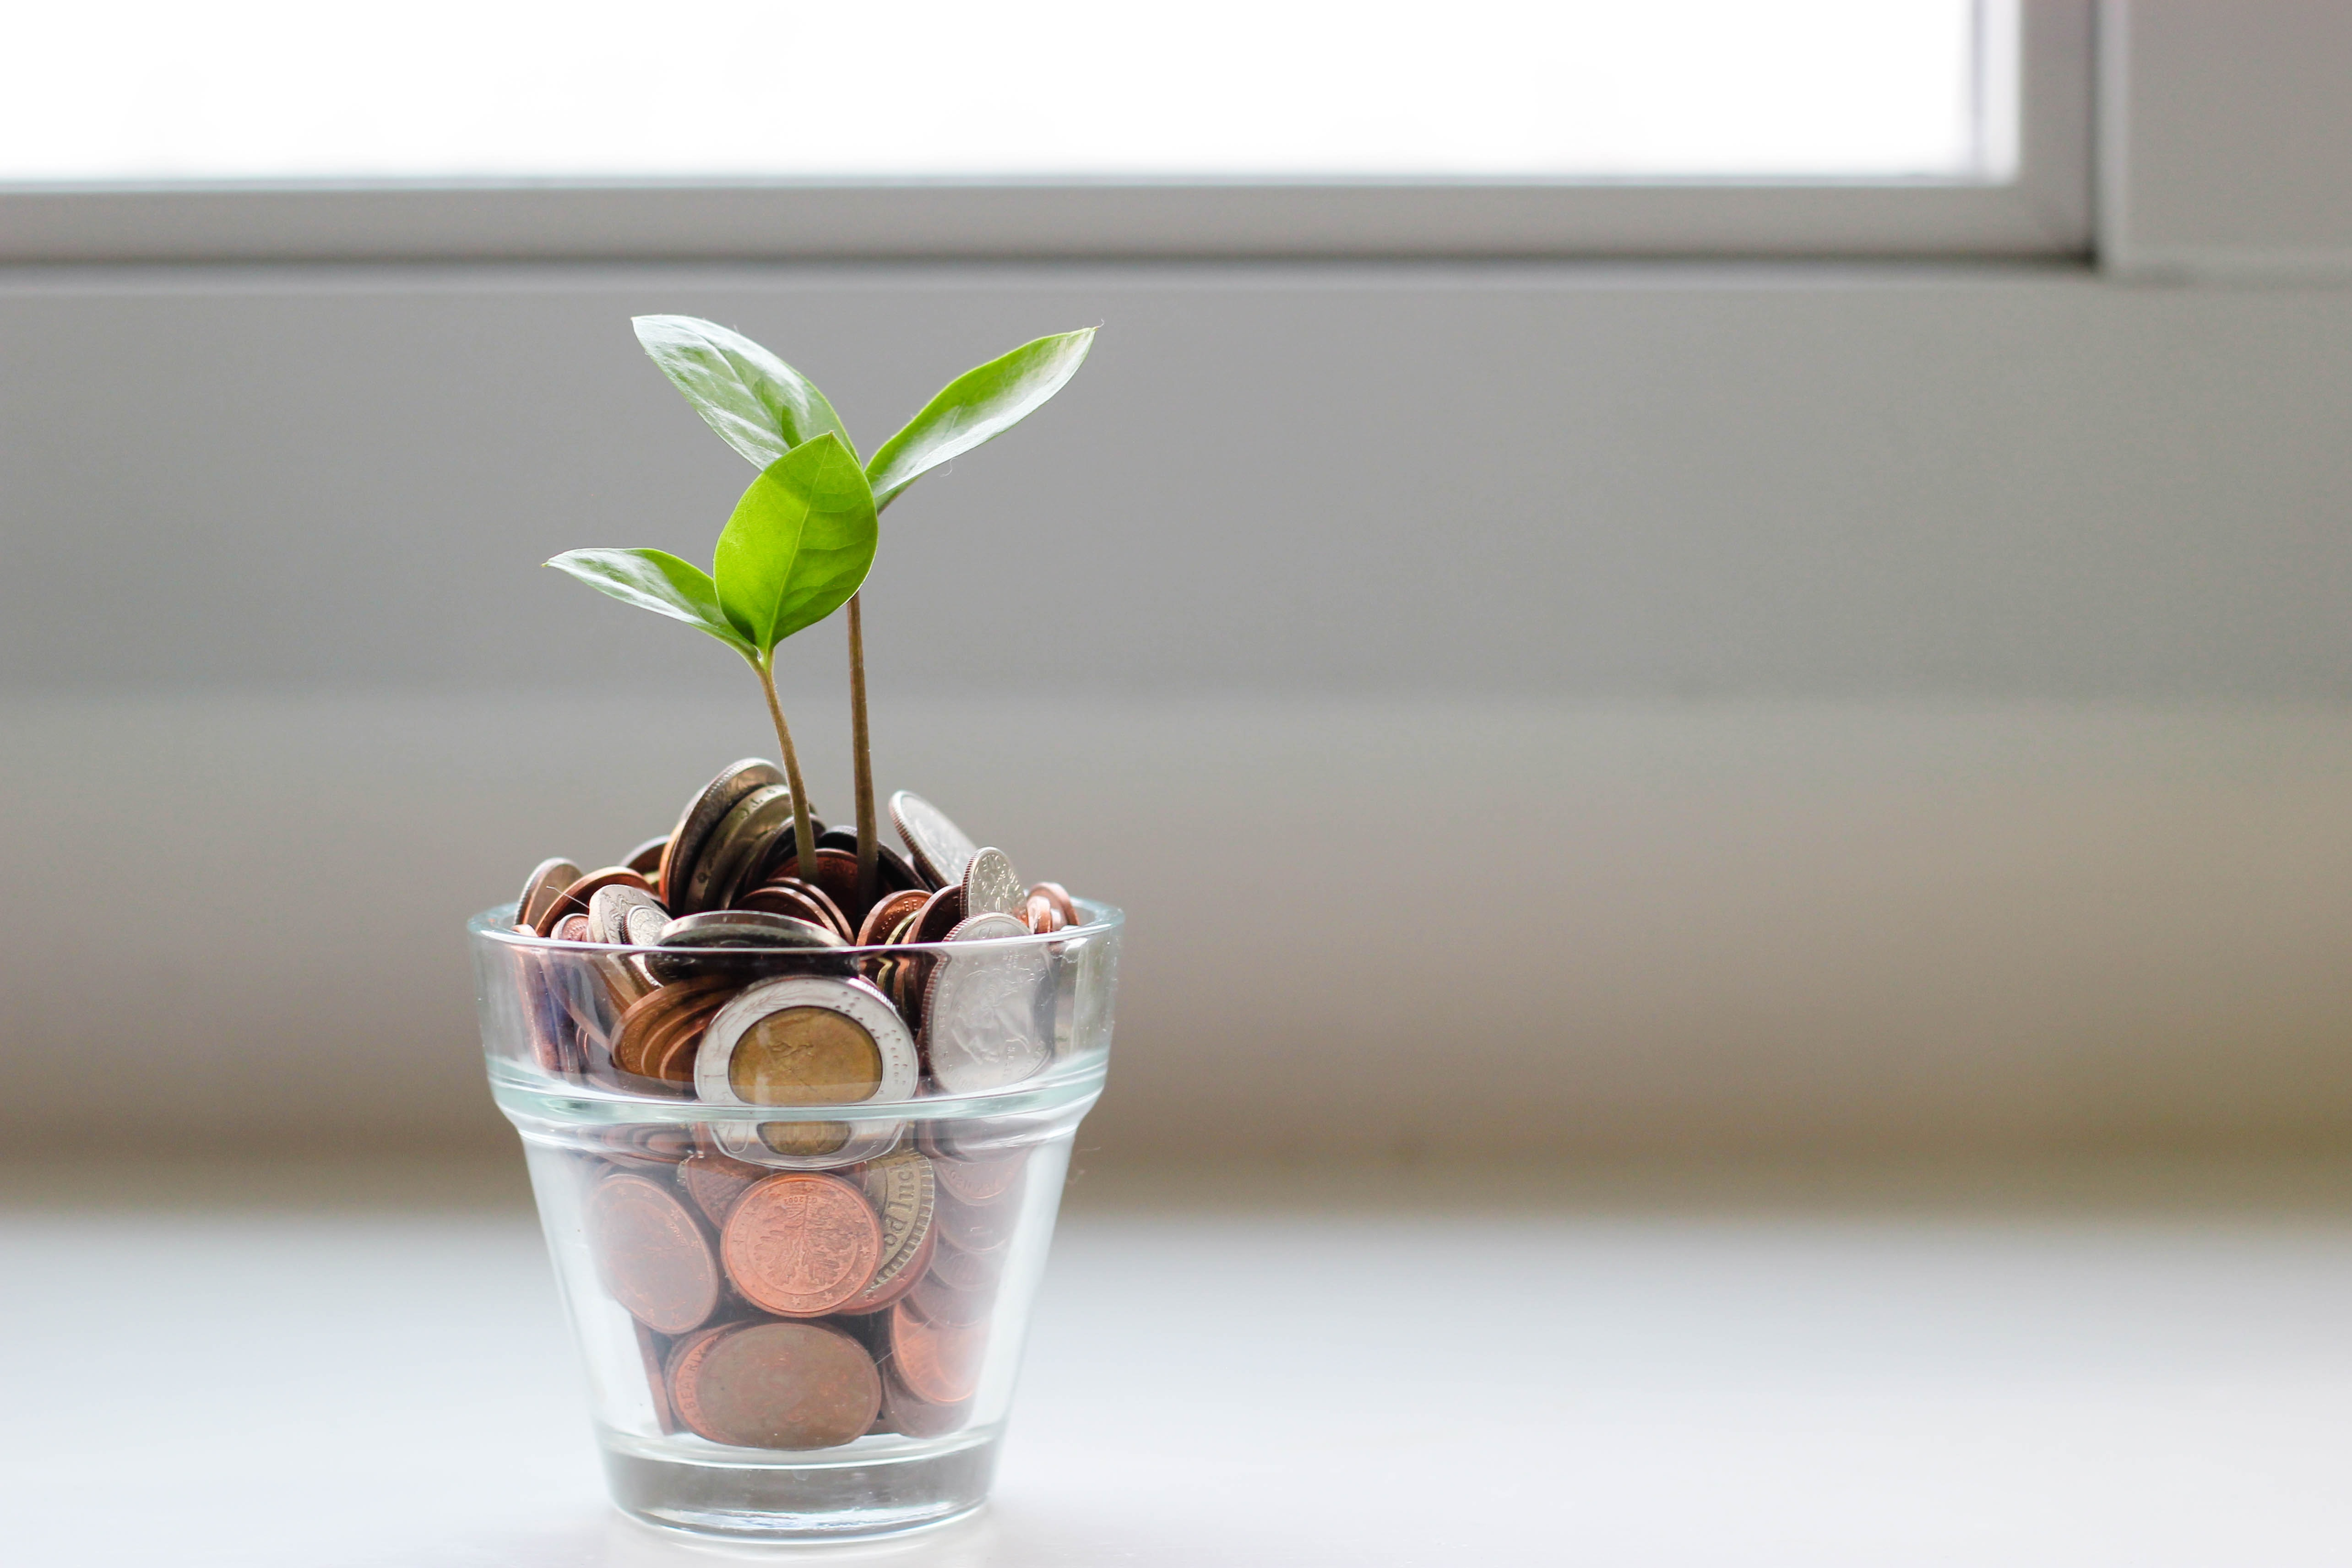 Is infinite growth worth it? The search for a holistic approach to business